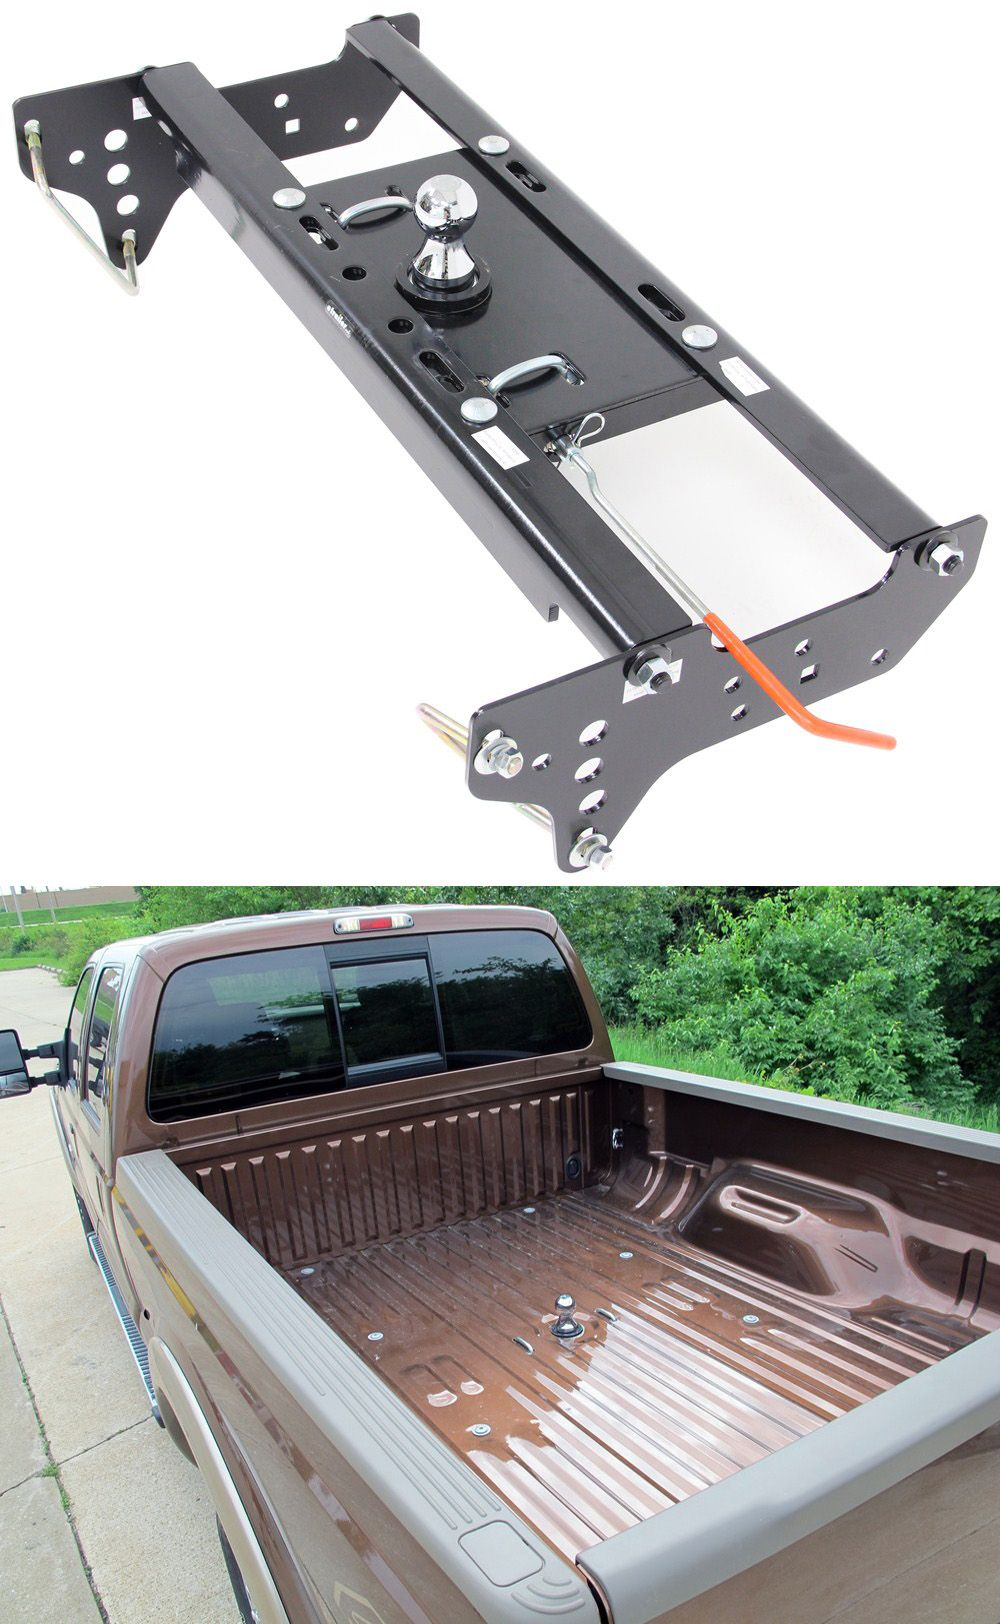 medium resolution of for your f 250 f 350 underbed gooseneck trailer hitch with installation kit wheel well accessible handle makes it easy to engage and disengage